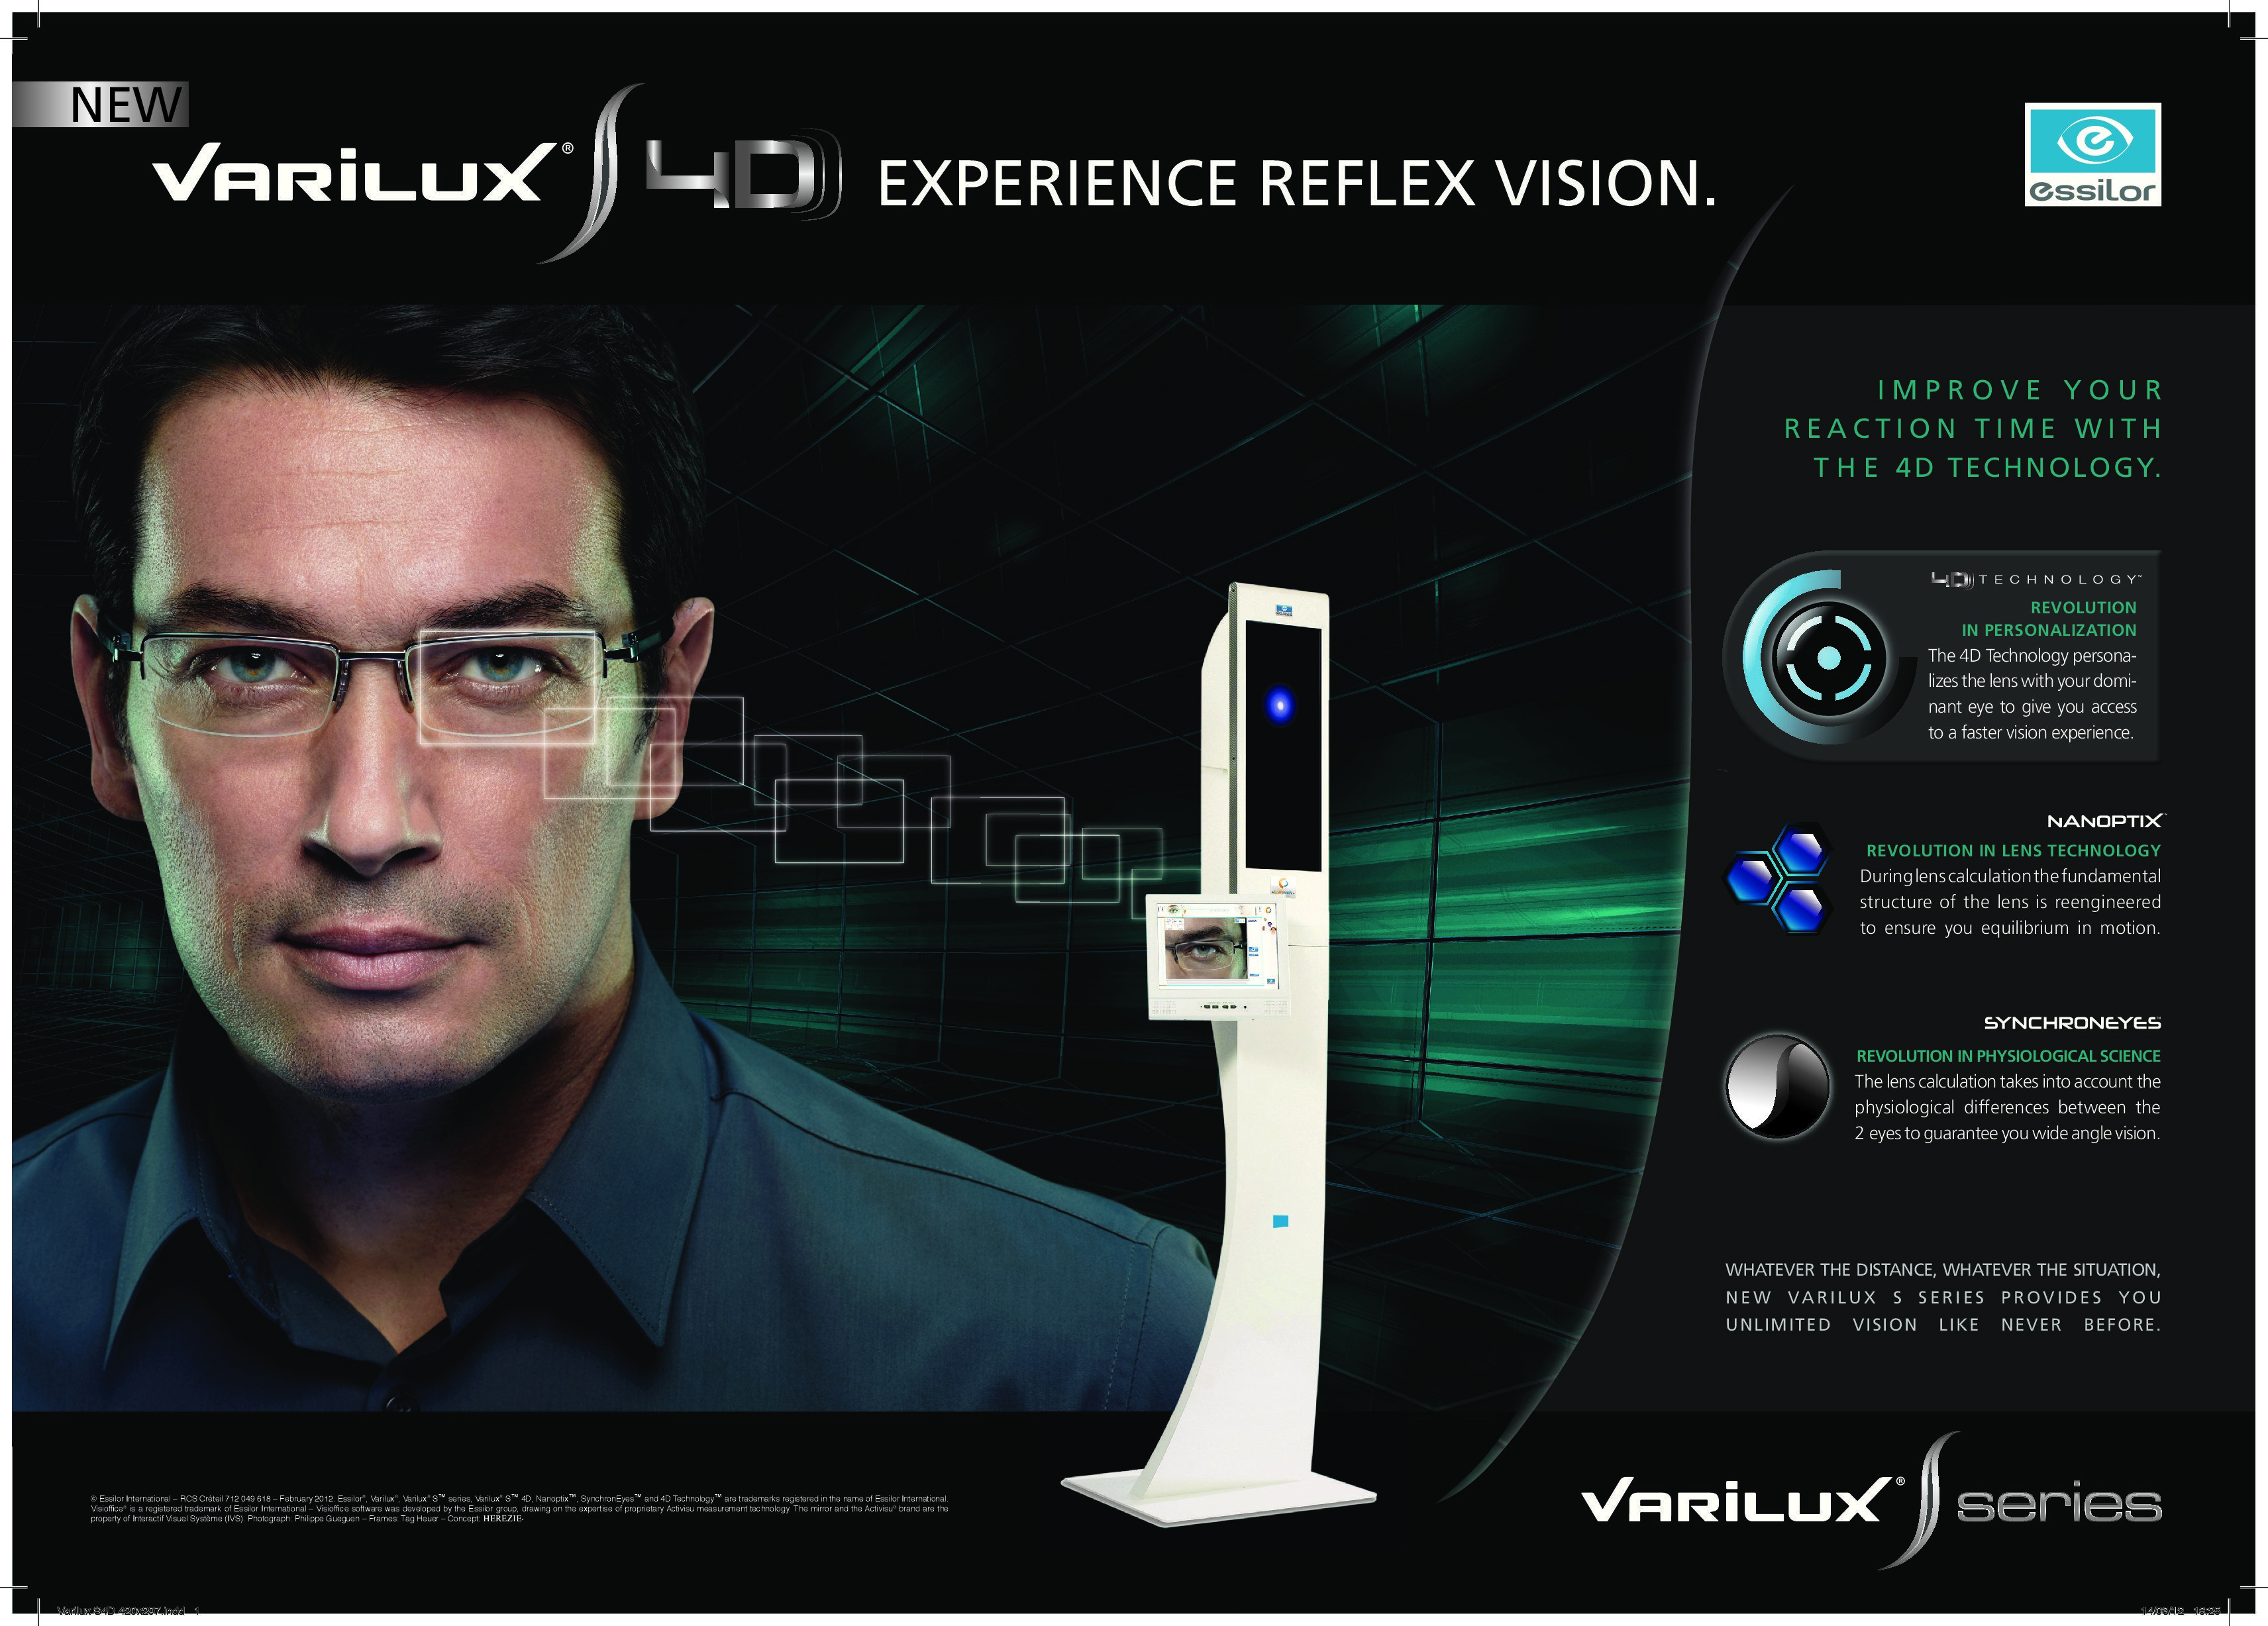 560b24a44a3e Varilux S 4D - Award winning progressive lenses that give you wide field of  vision